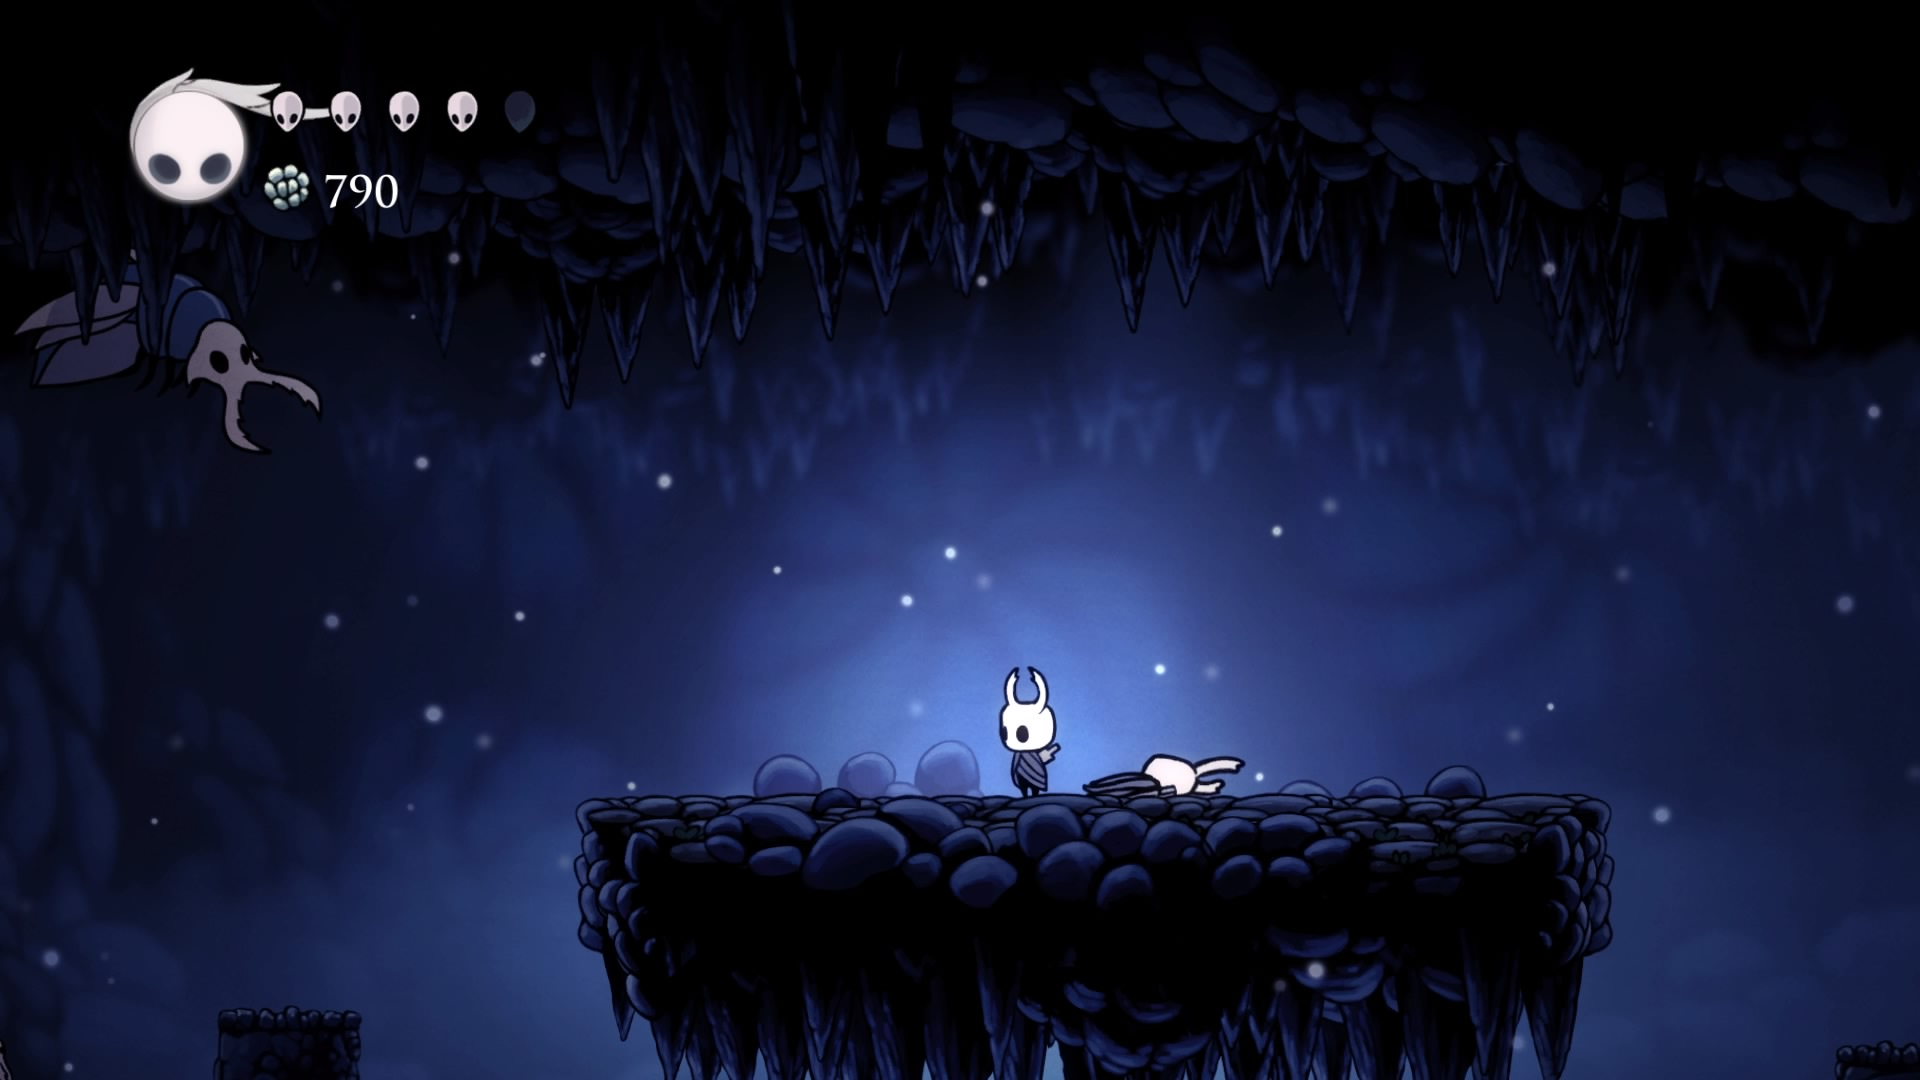 Hollow Knight 20191009155432 - Hollow Knight, guida e lore: Verdevia II